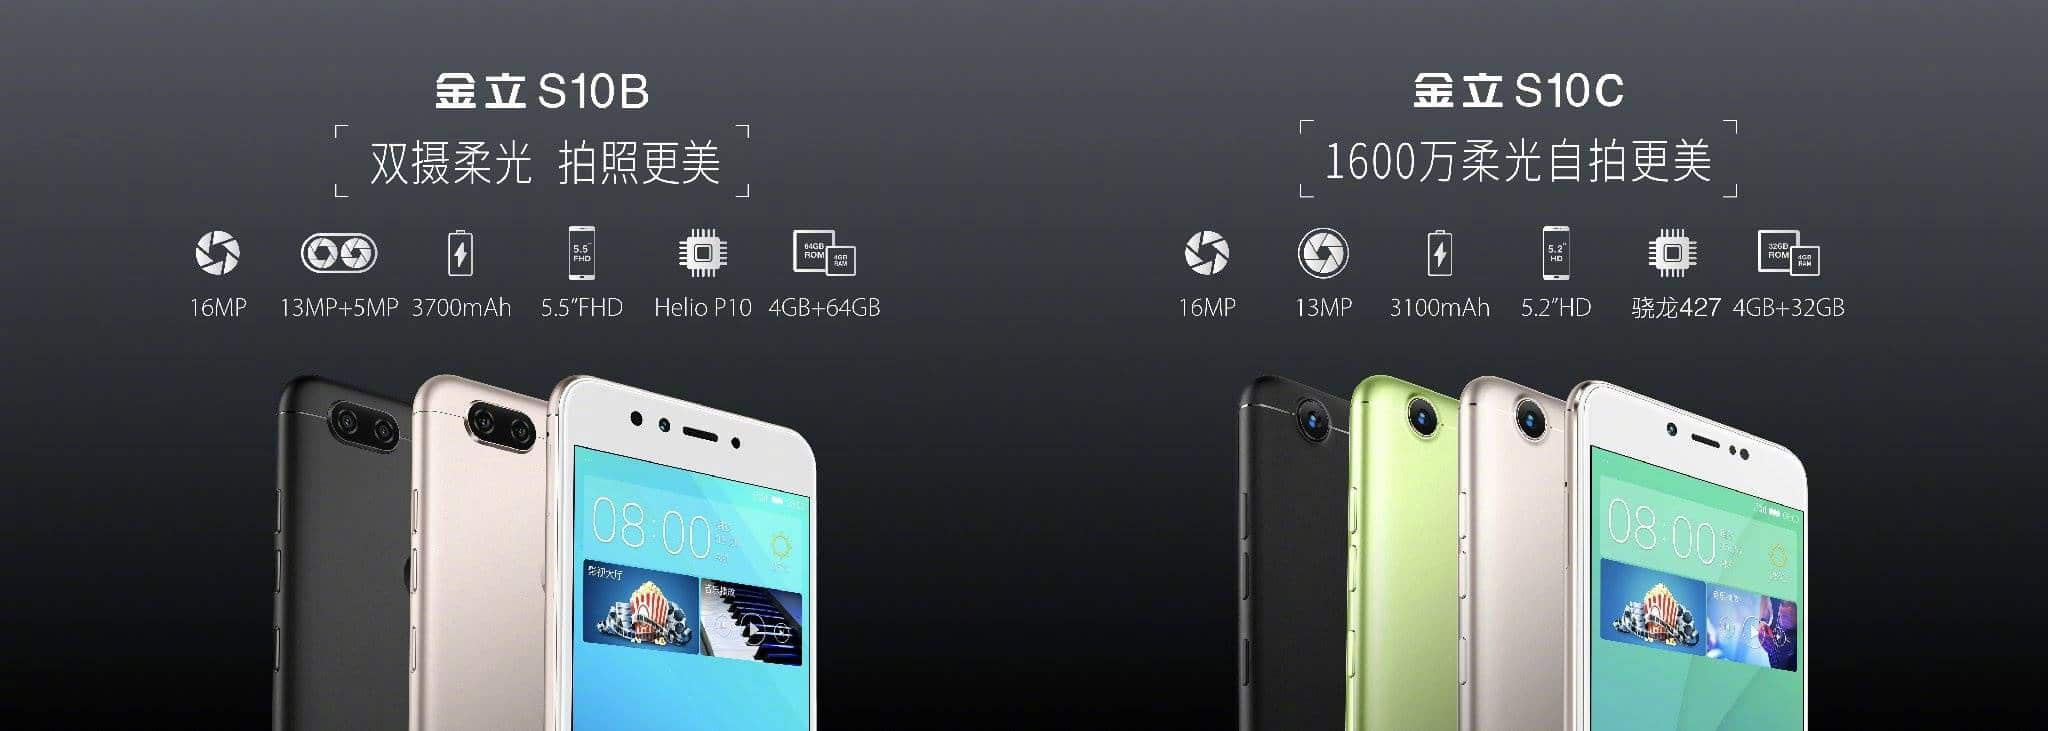 gionee s10b and s10c